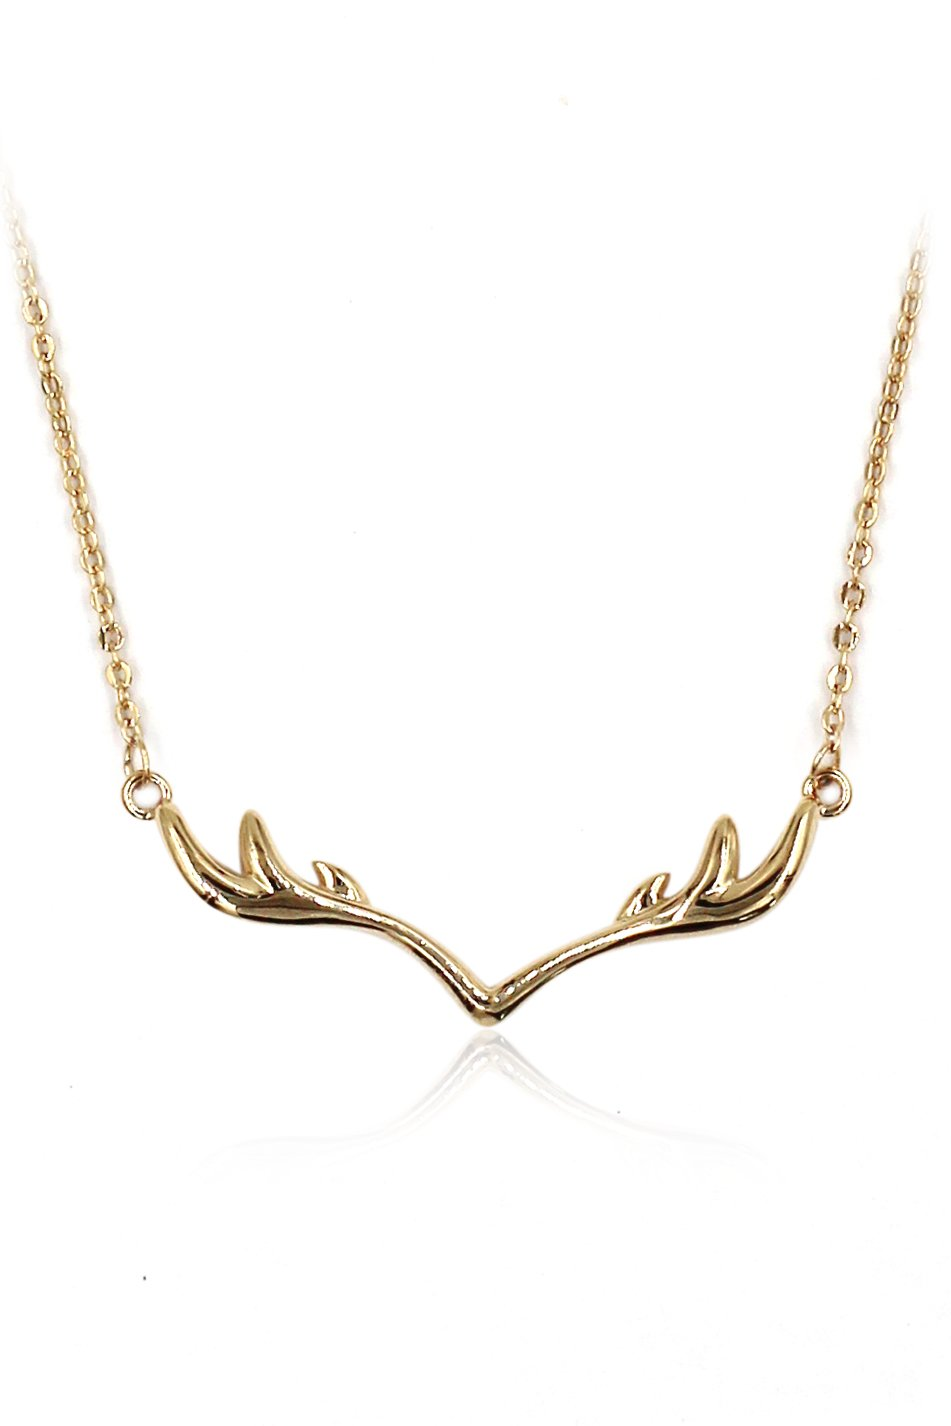 Fashion antlers clavicle Sterling Silver Chain gold necklace